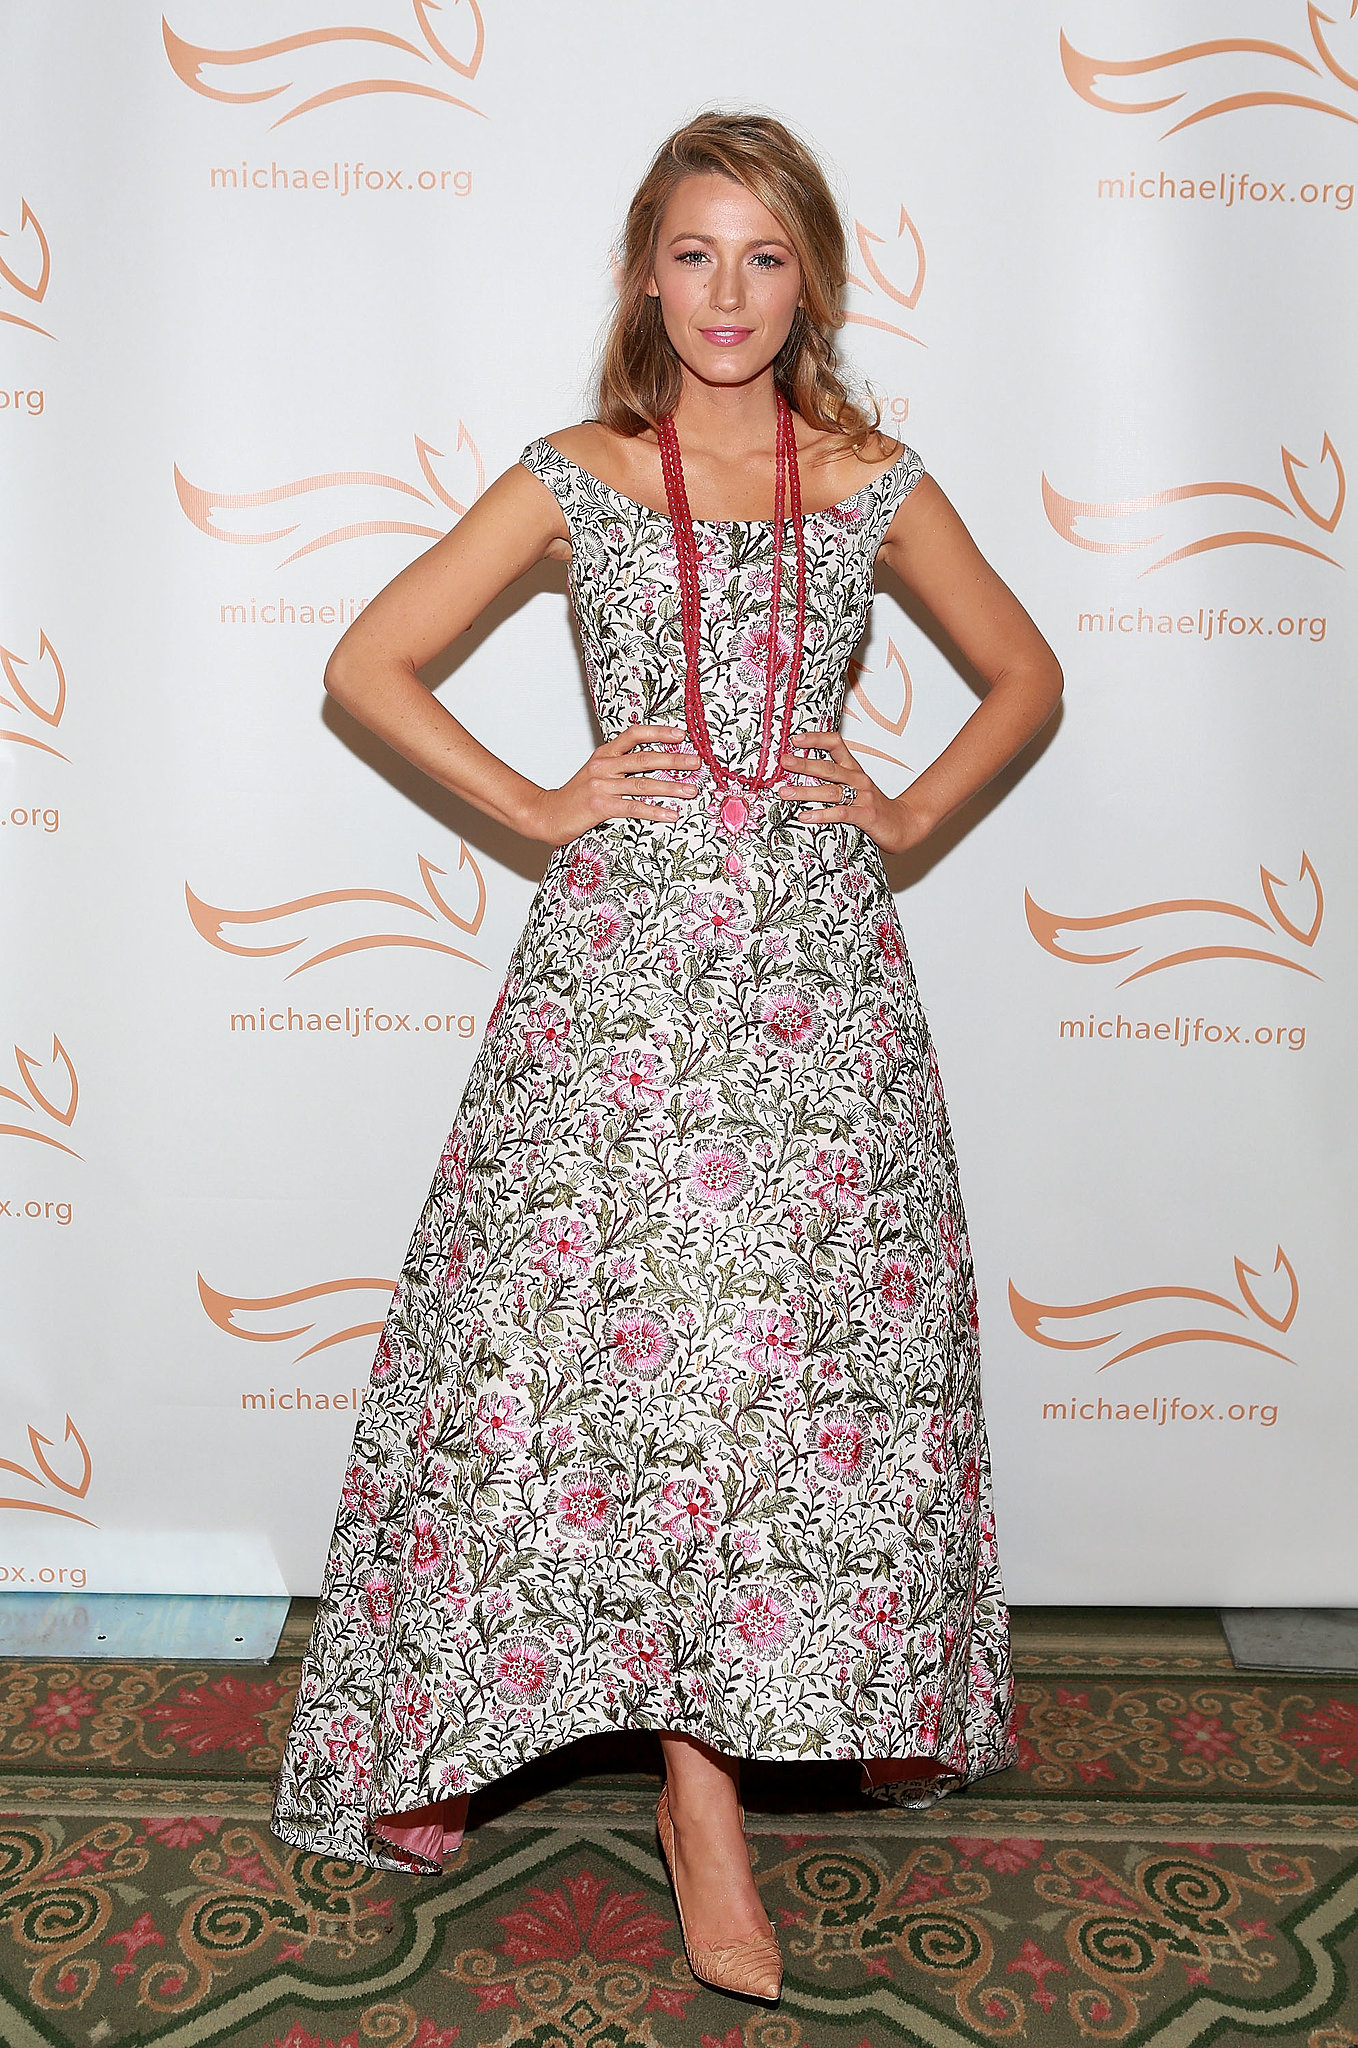 Sequins don't have to be sexy. In the case of Blake Lively's Oscar de la Renta floral gown at the A Funny Thing Happened on the Way to Cure Parkinson's, they were feminine and pretty.